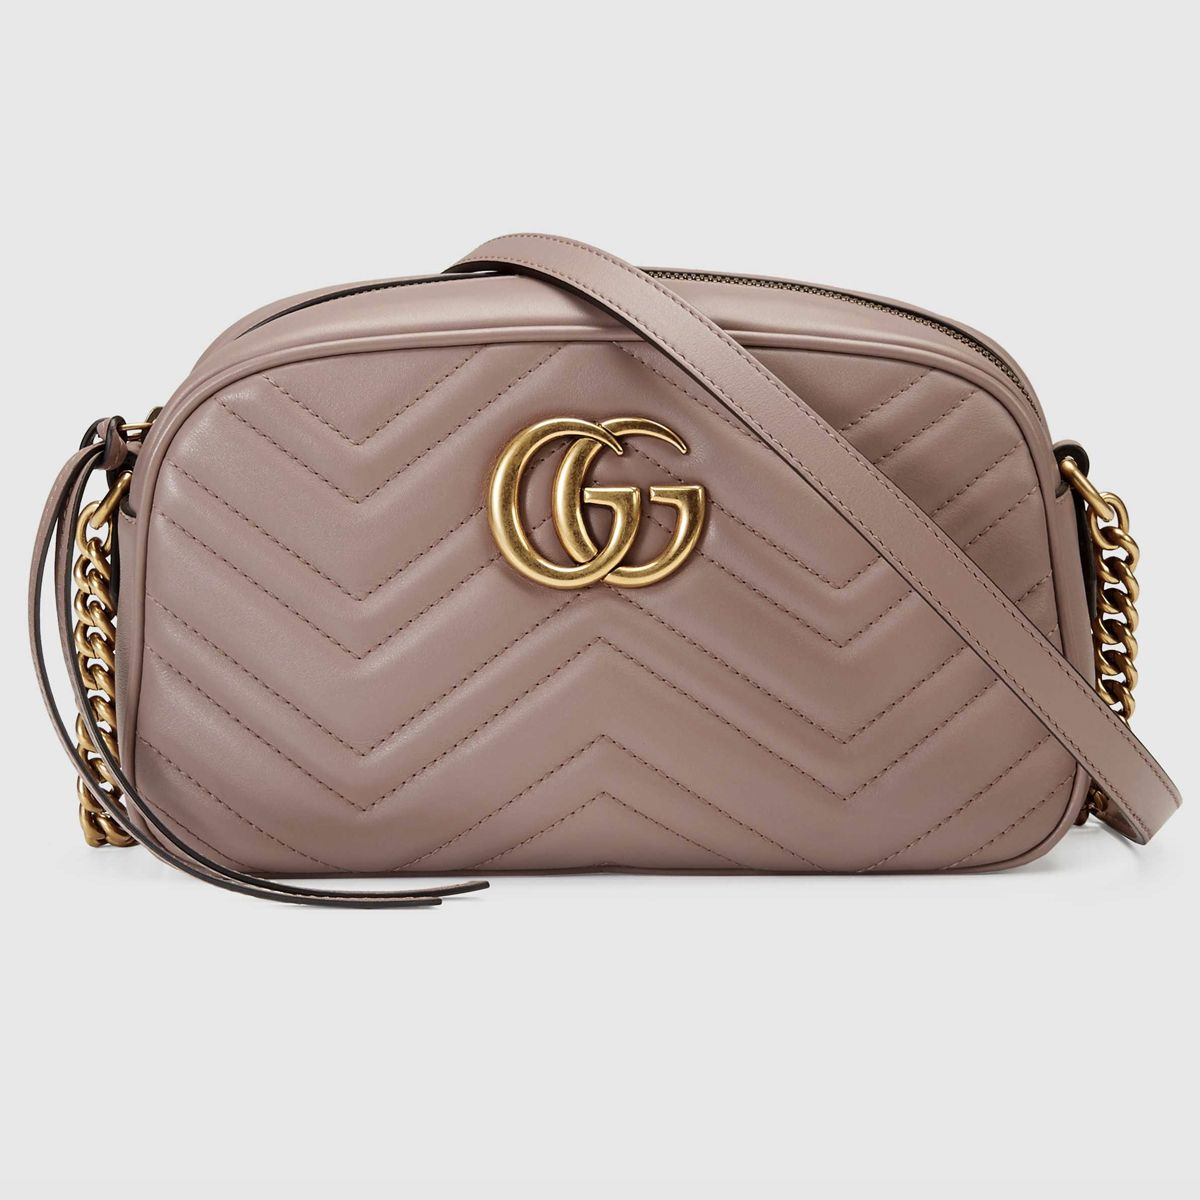 undefined 265463 1534504942424 product.1200x1200uc - 10 Extra Inexpensive Methods to Add Gucci Into Your Wardrobe